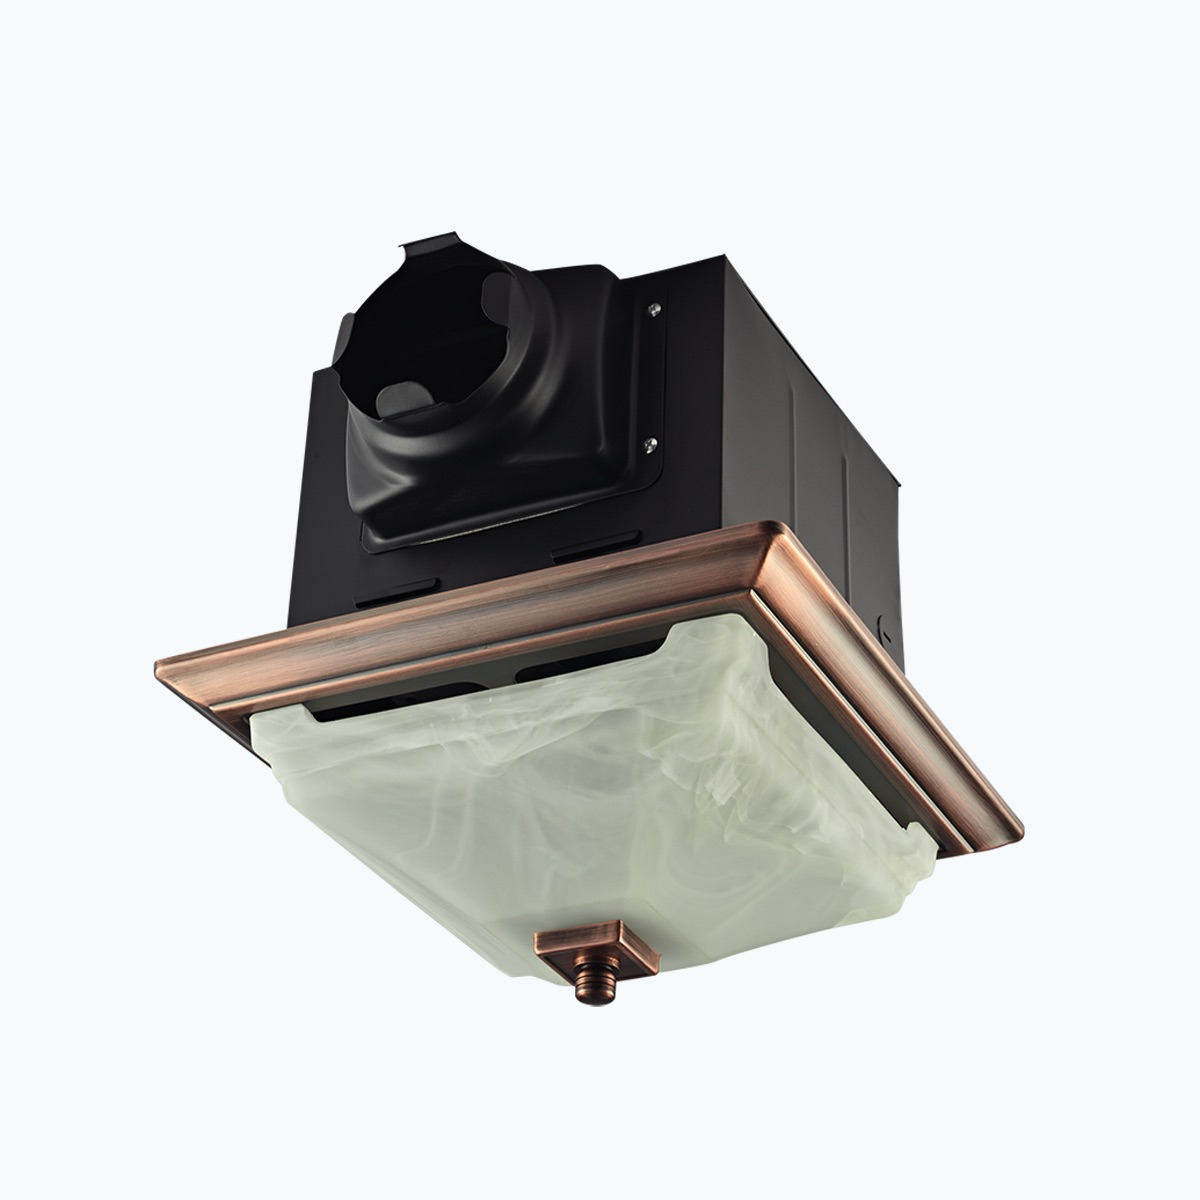 Decorative Oil Rubbed Bronze 110CFM Ceiling Bath Fan with Light and Glass Globe